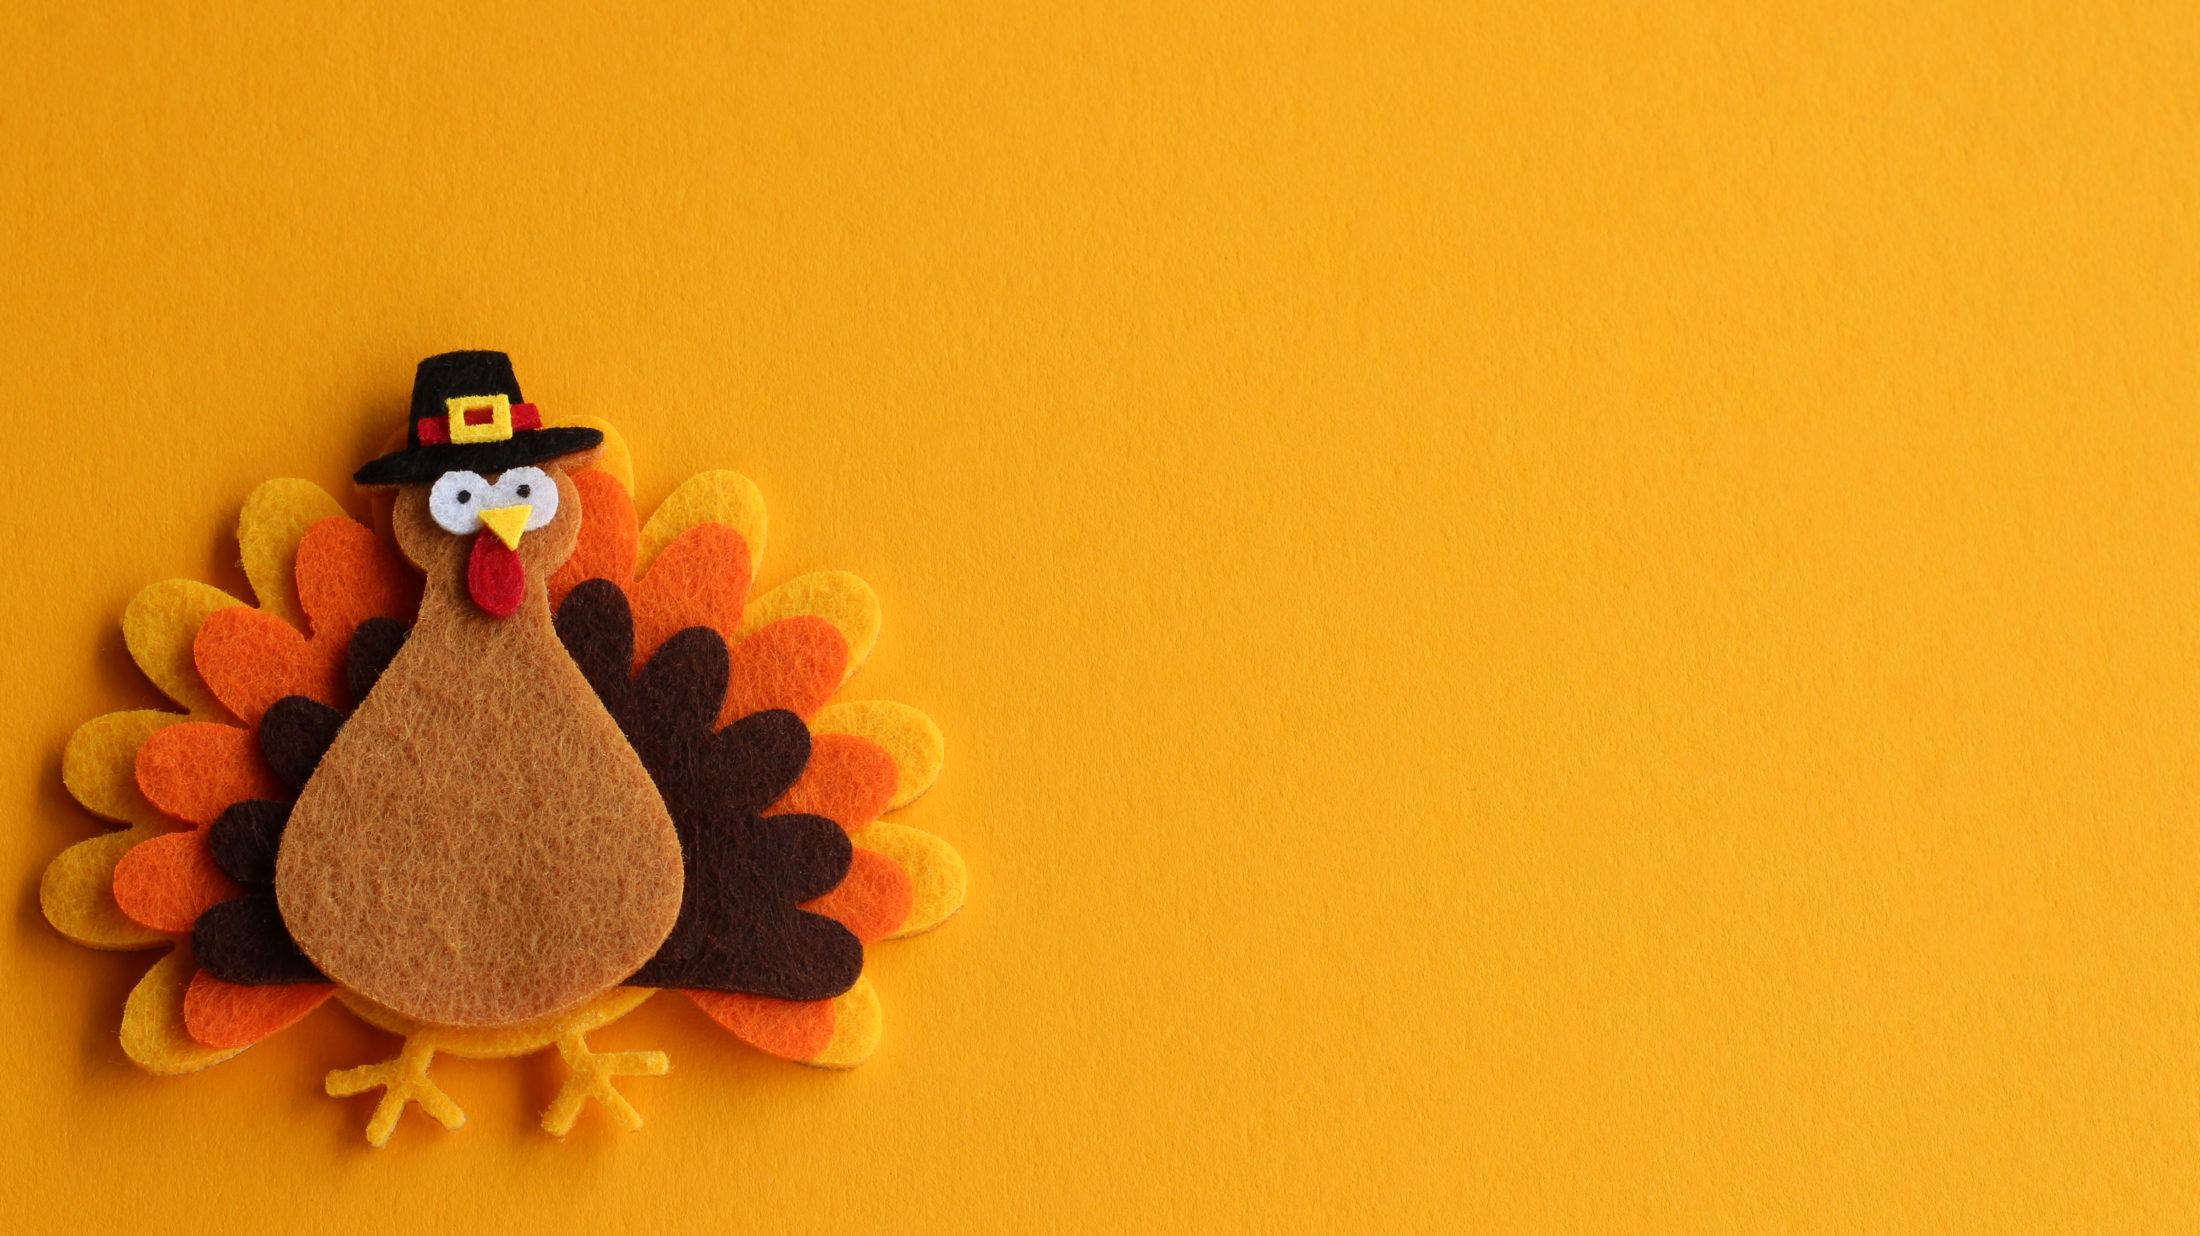 Thanksgiving Day turkey made of felt